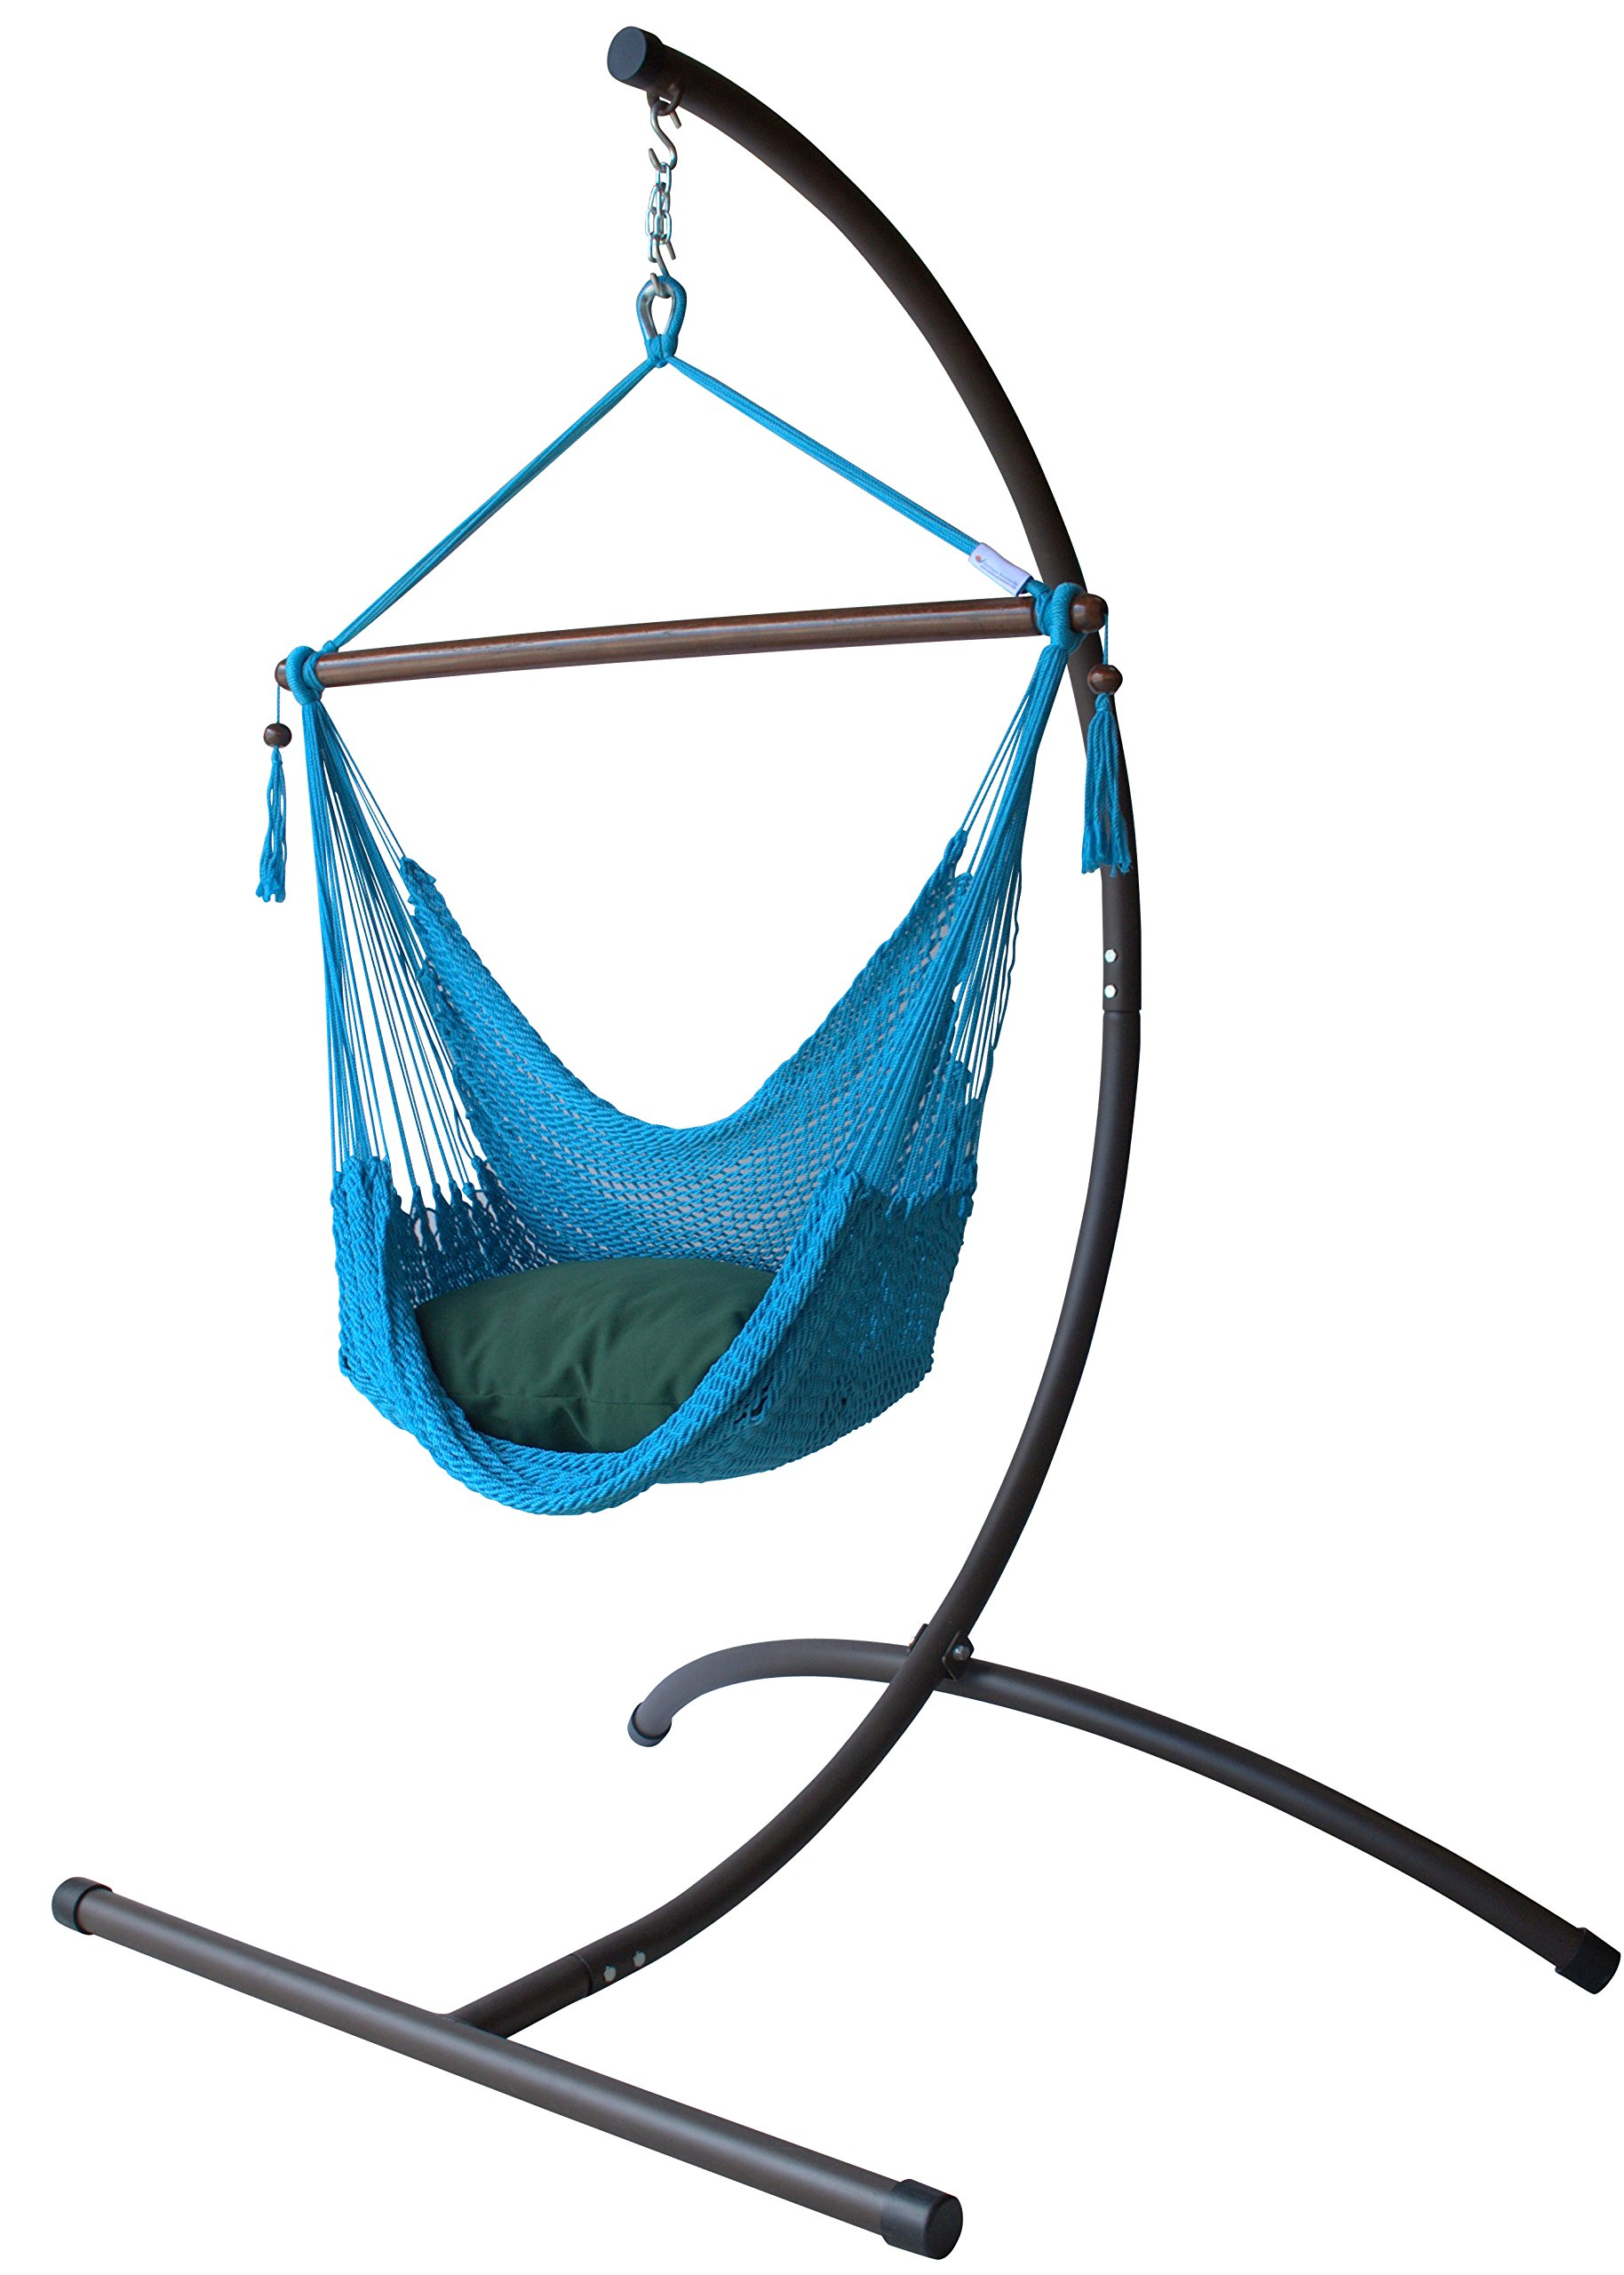 Caribbean Hammock Chair with Footrest - 40 inch - C-Stand (Light Blue)